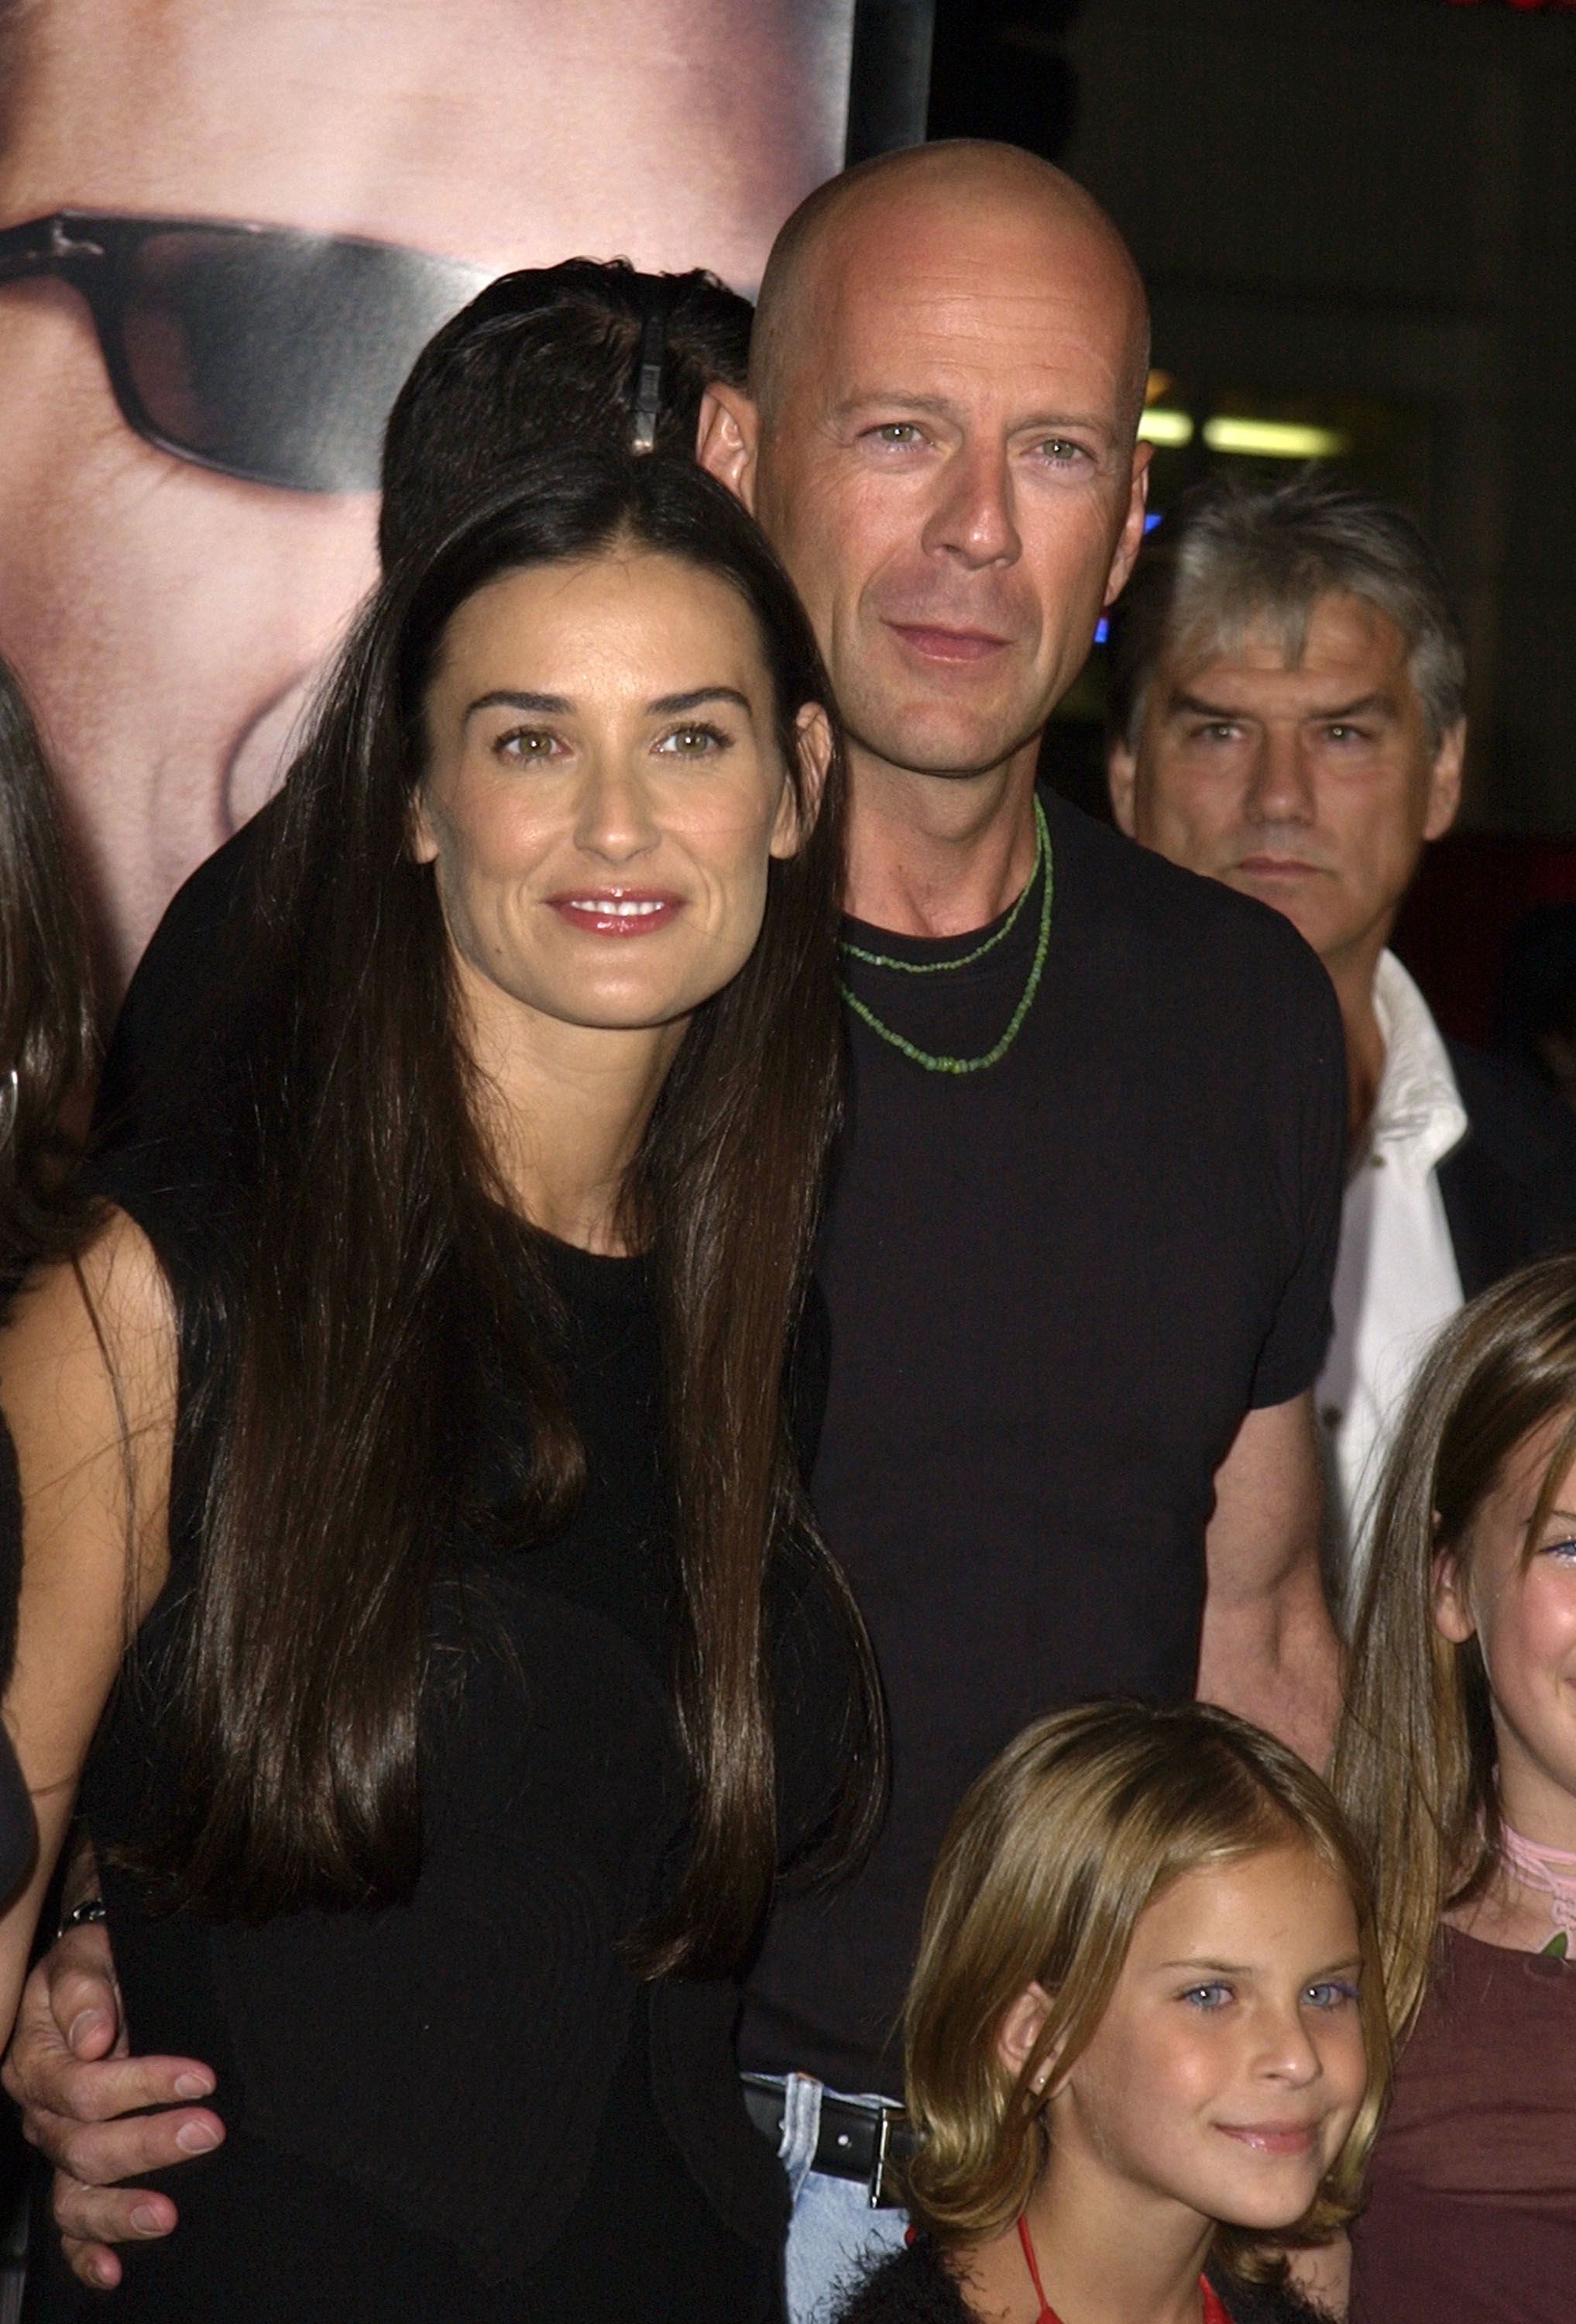 bruce willis dating 2014 Bruce willis and demi moore might have divorced 16 years ago but the two remained close friends and great parents to their three daughters january 31, 2016 9:12am by jessica napoli by jessica stay up to date with the latest from ok.